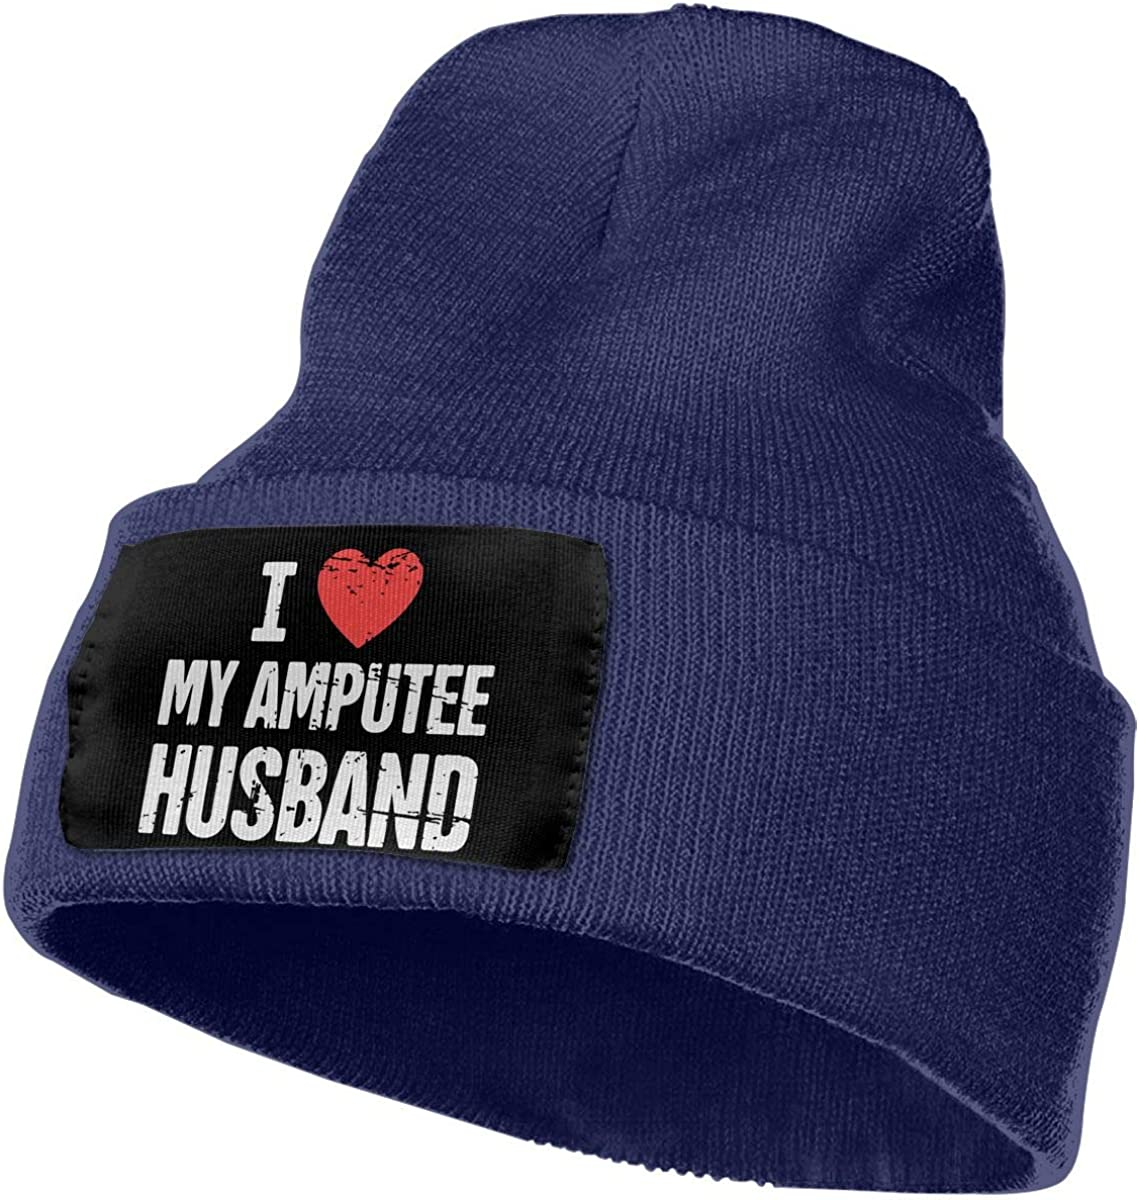 Unisex I Love My Amputee Husband Outdoor Fashion Knit Beanies Hat Soft Winter Knit Caps